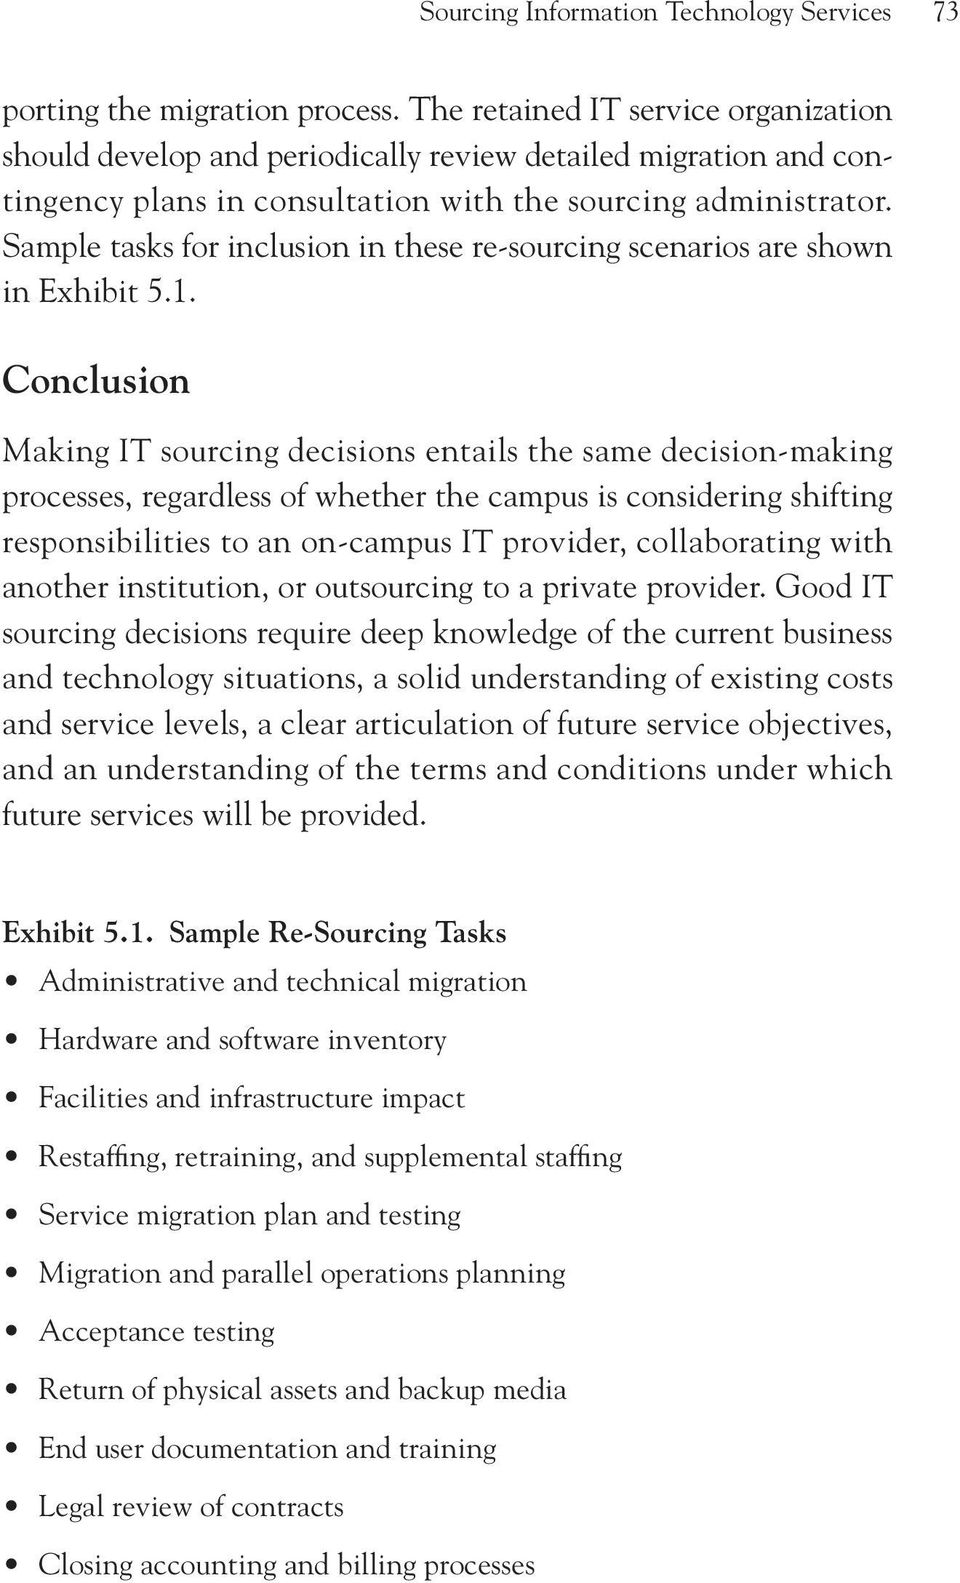 Sample tasks for inclusion in these re-sourcing scenarios are shown in Exhibit 5.1.